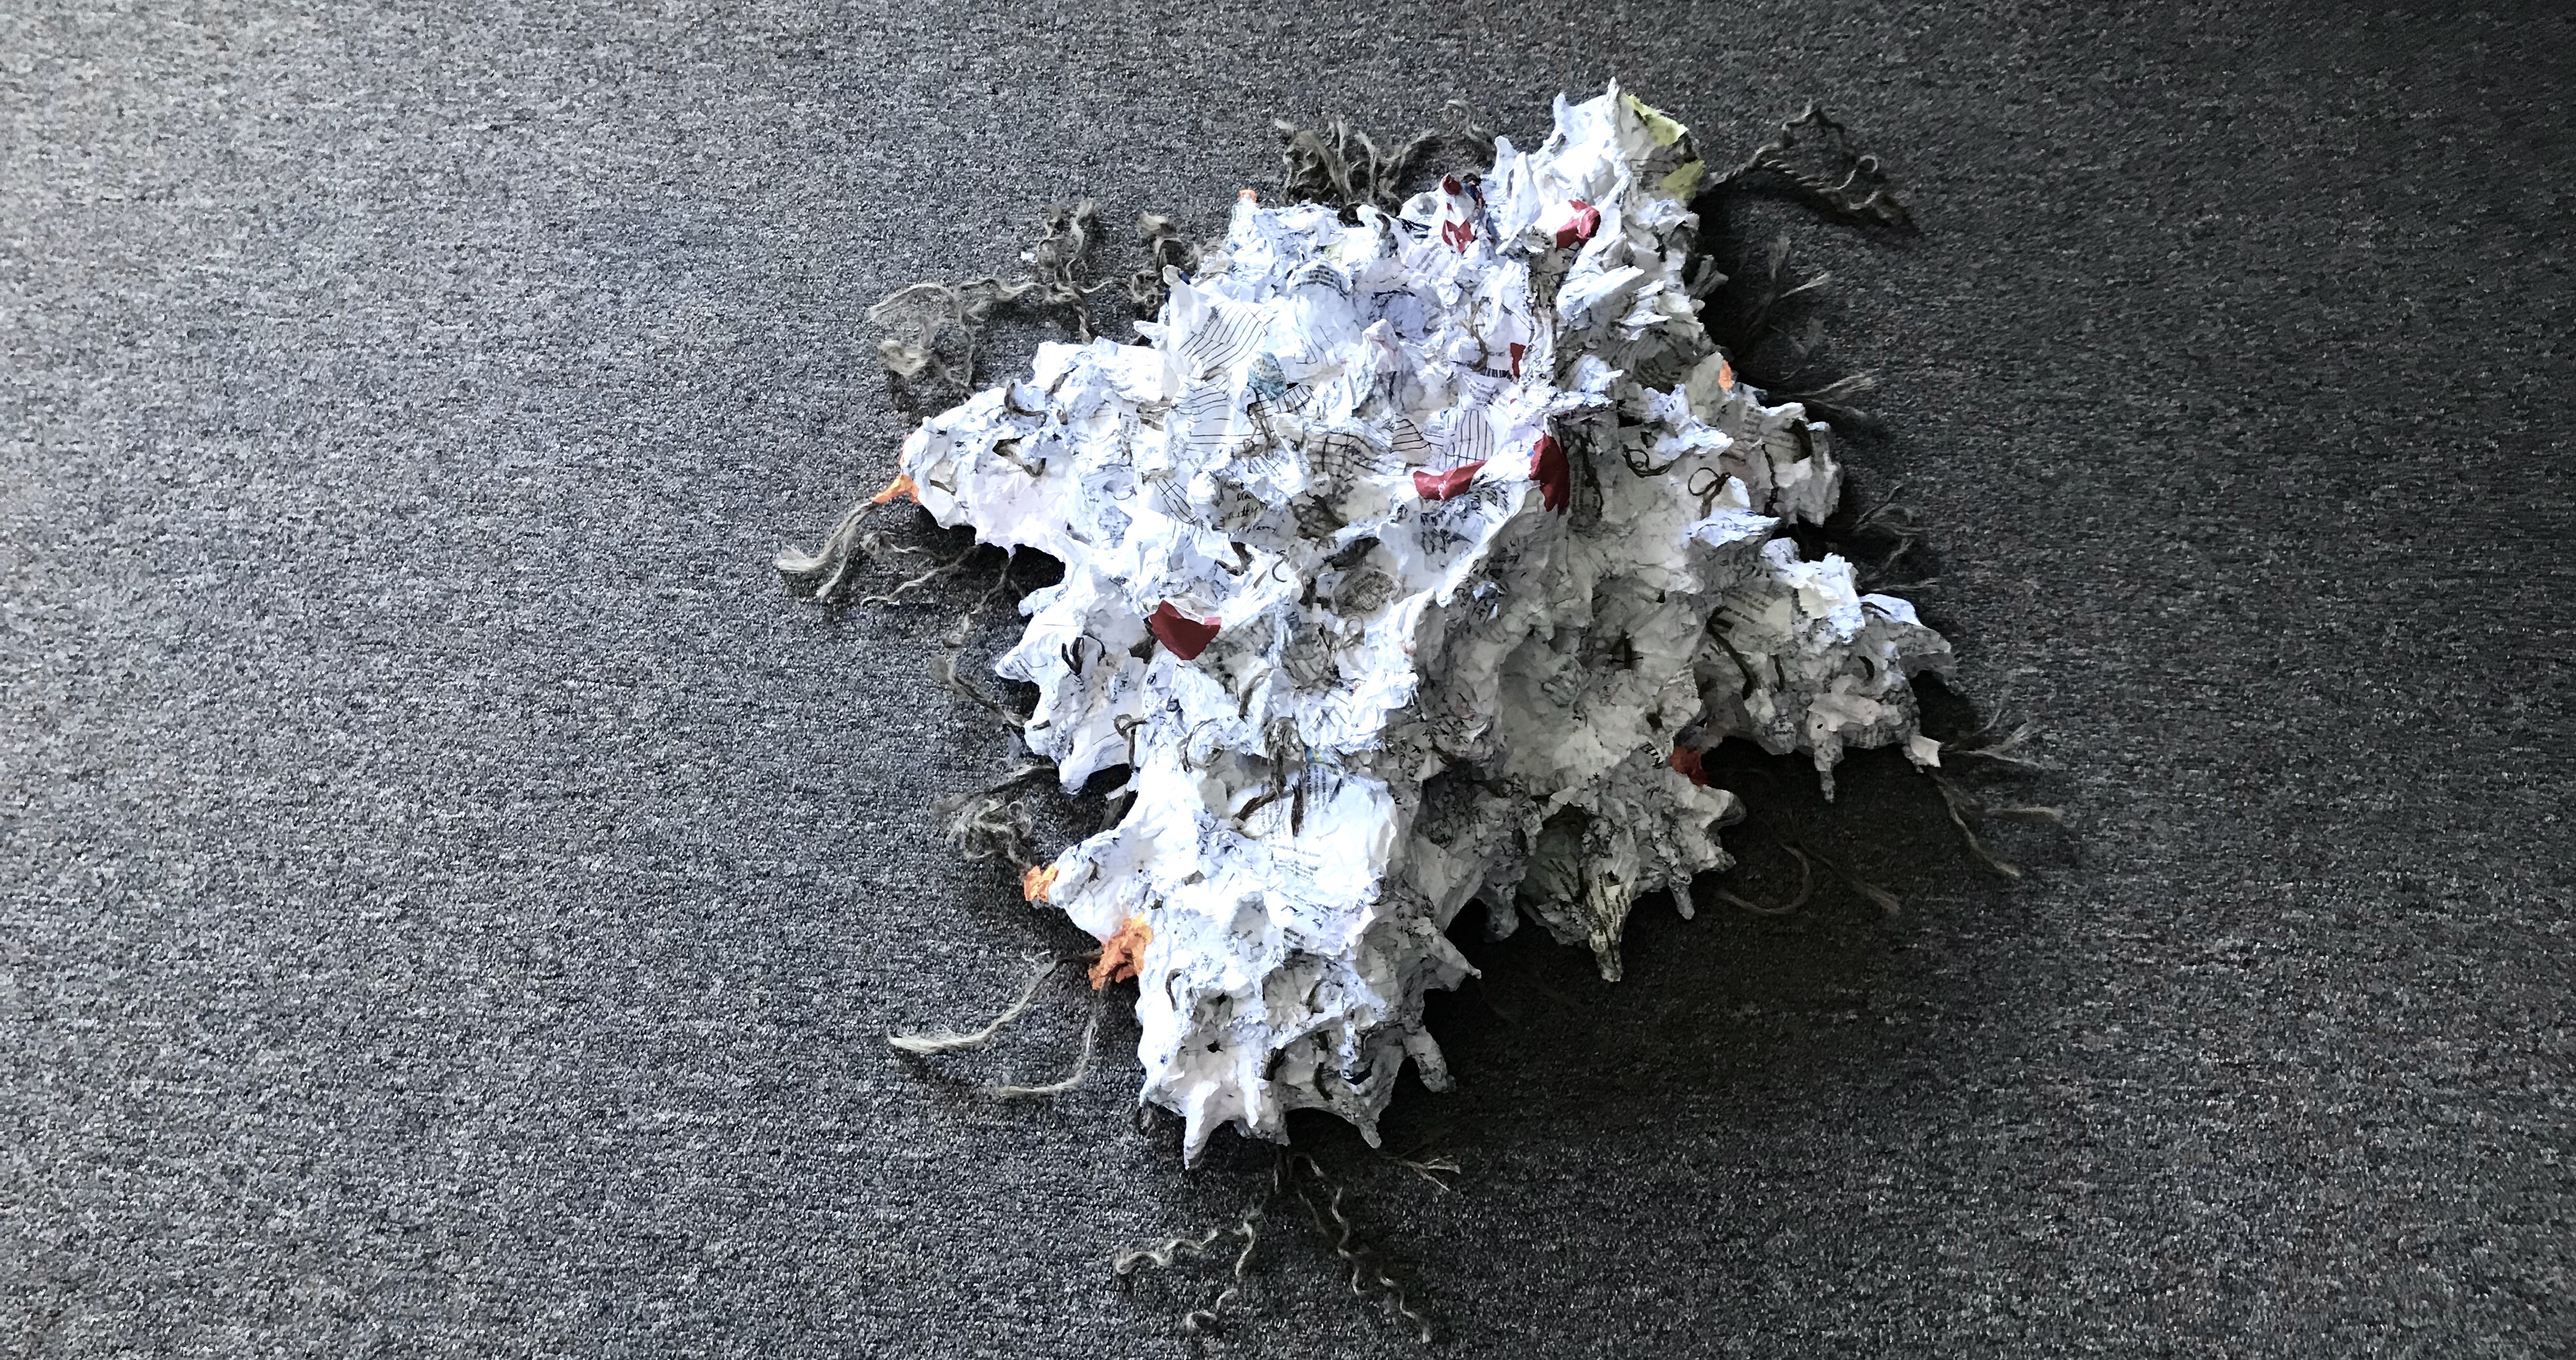 Dorsal view of an abstract paper mache sculpture in progress by MJ Seal that resembles a peculiar starfish or some strange, compass rose shaped temple with multitudes of faces